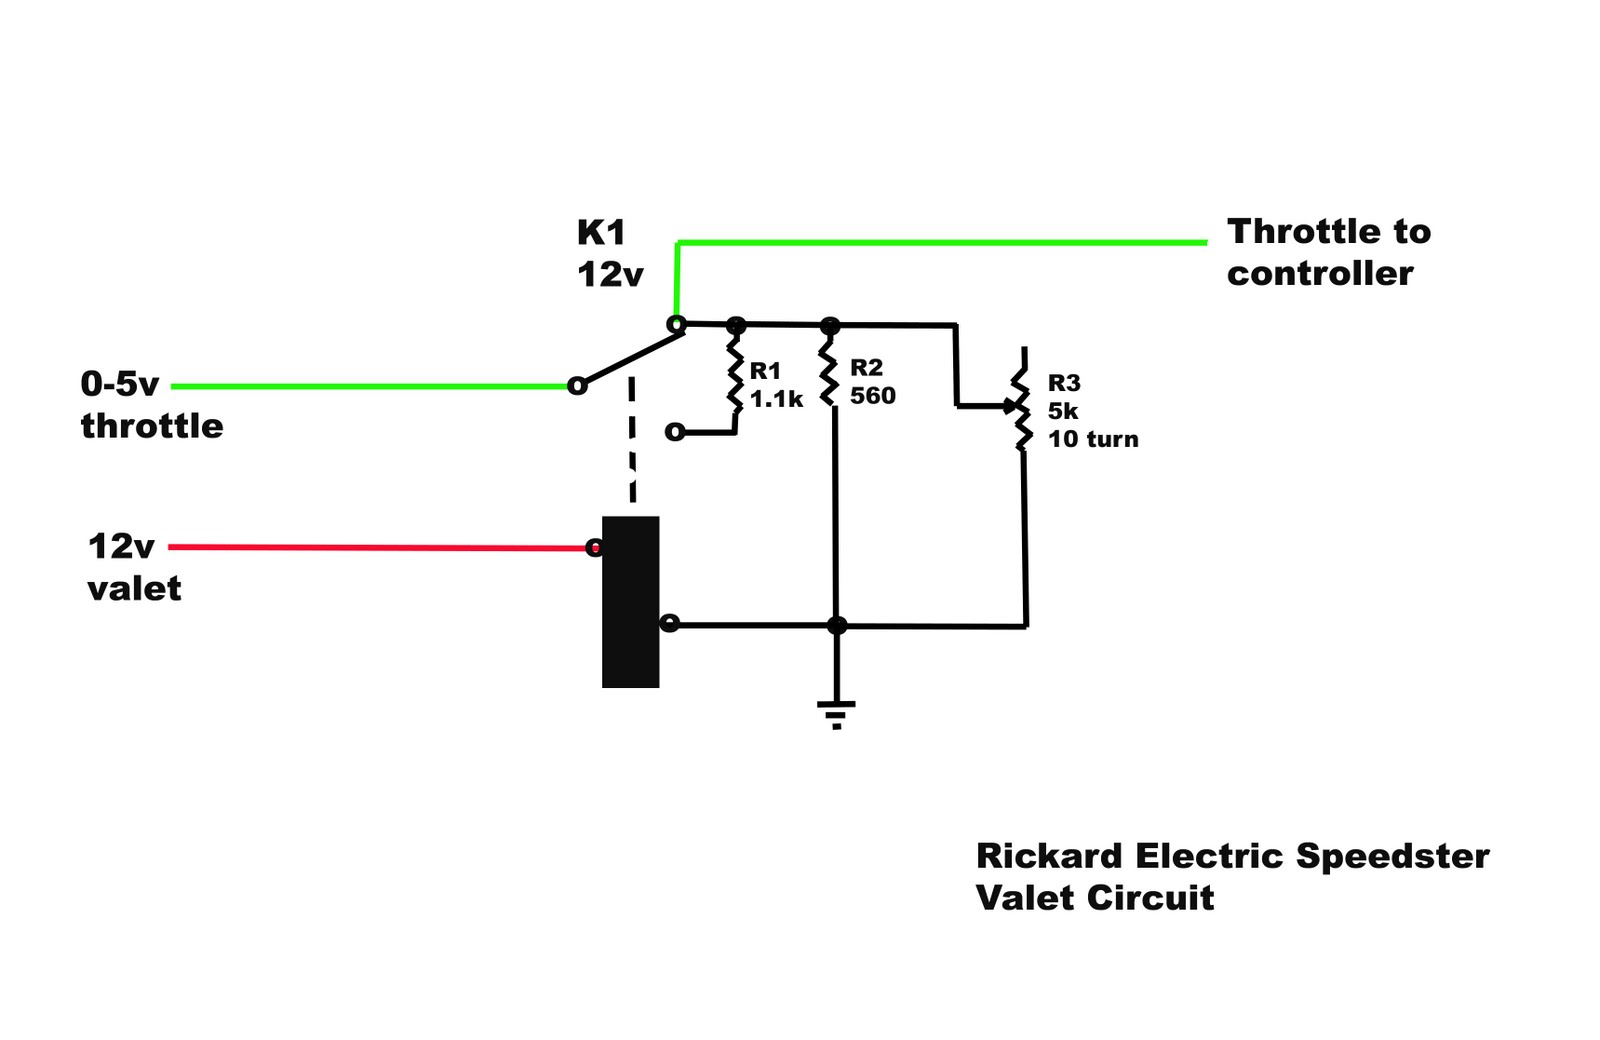 evtv.me: life in lifepo4 - cycle life and attenuation data 12v normally closed relay wiring diagram #1